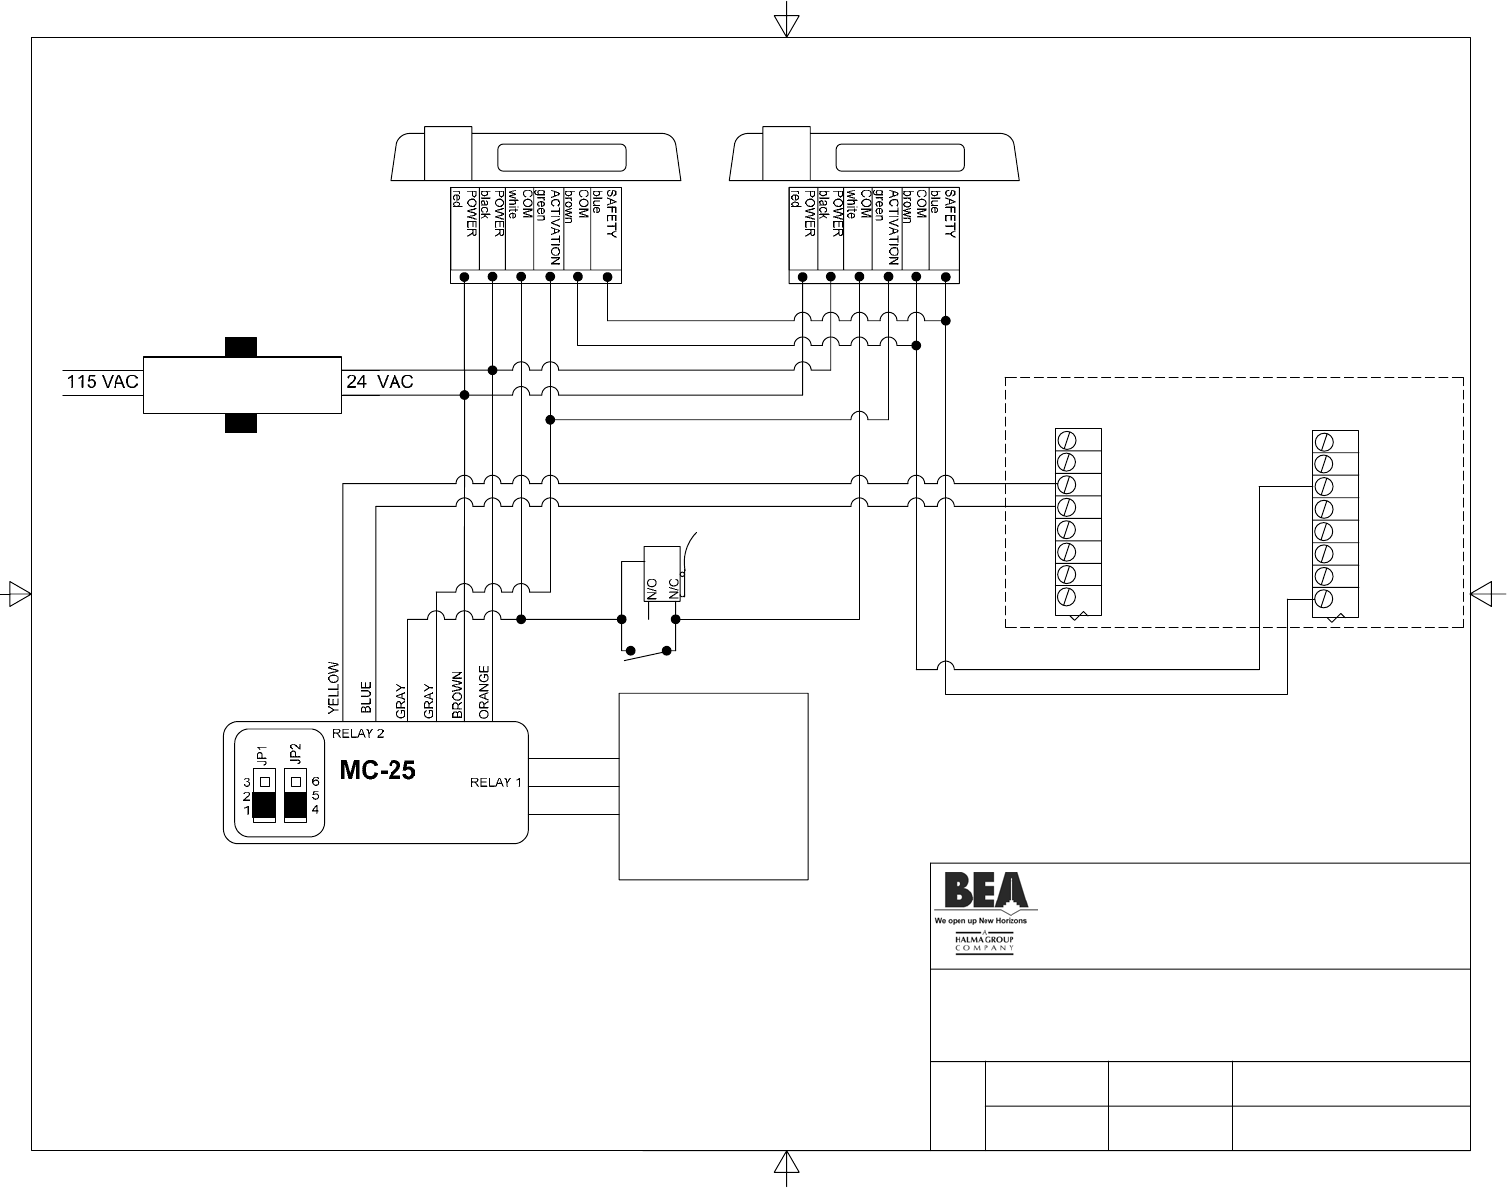 ca647ff3 1322 44d5 afd2 be5728ca6bf1 bg1 bea door dip switch i user guide manualsonline com stanley dura glide wiring diagram at gsmx.co